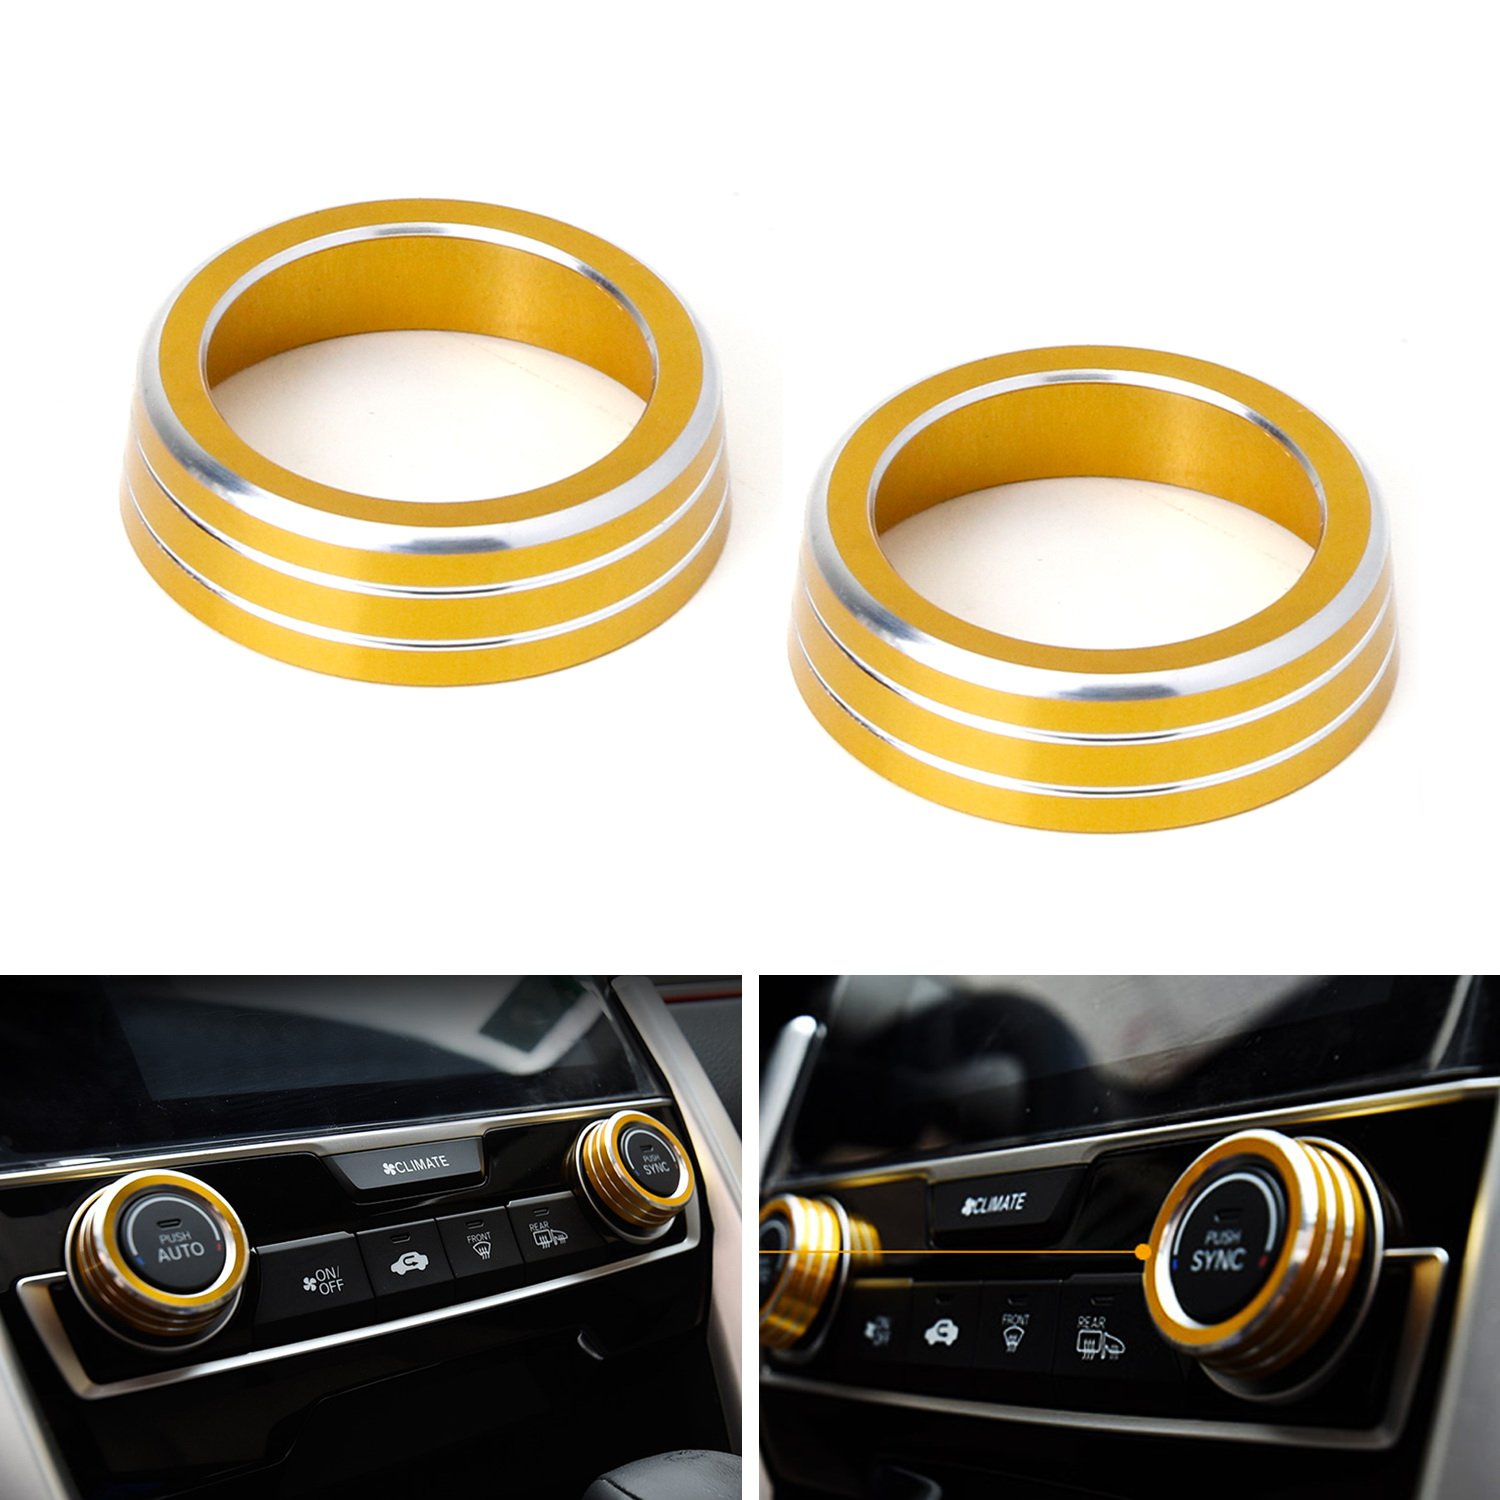 iJDMTOY 2pcs Red Anodized Aluminum AC Climate Control Ring Knob Covers For 2016-up 10th Gen Honda Civic